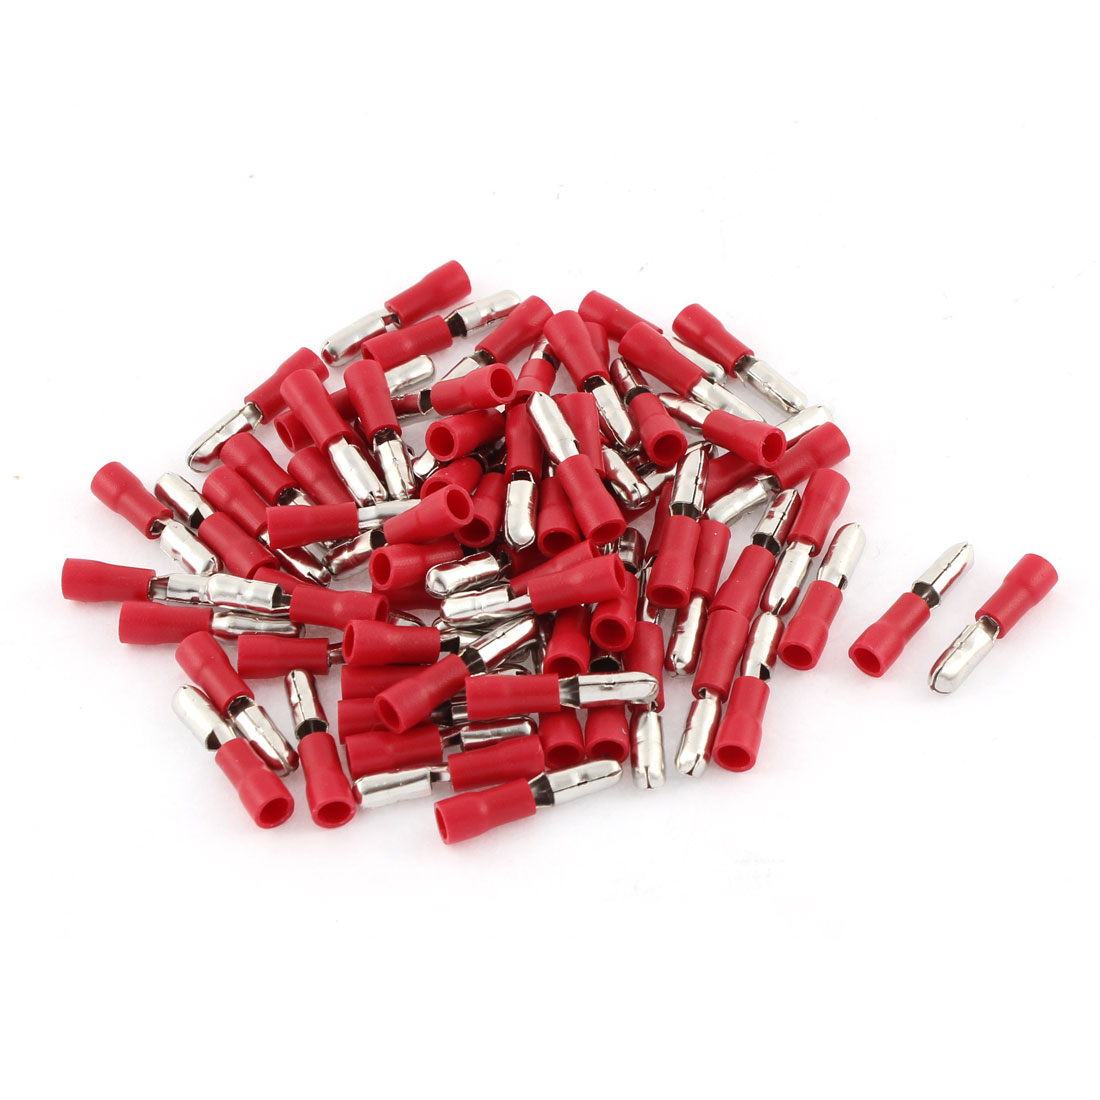 75Pcs 22-16 AWG Red Insulated Connector Male Crimp Terminals MPD1-156